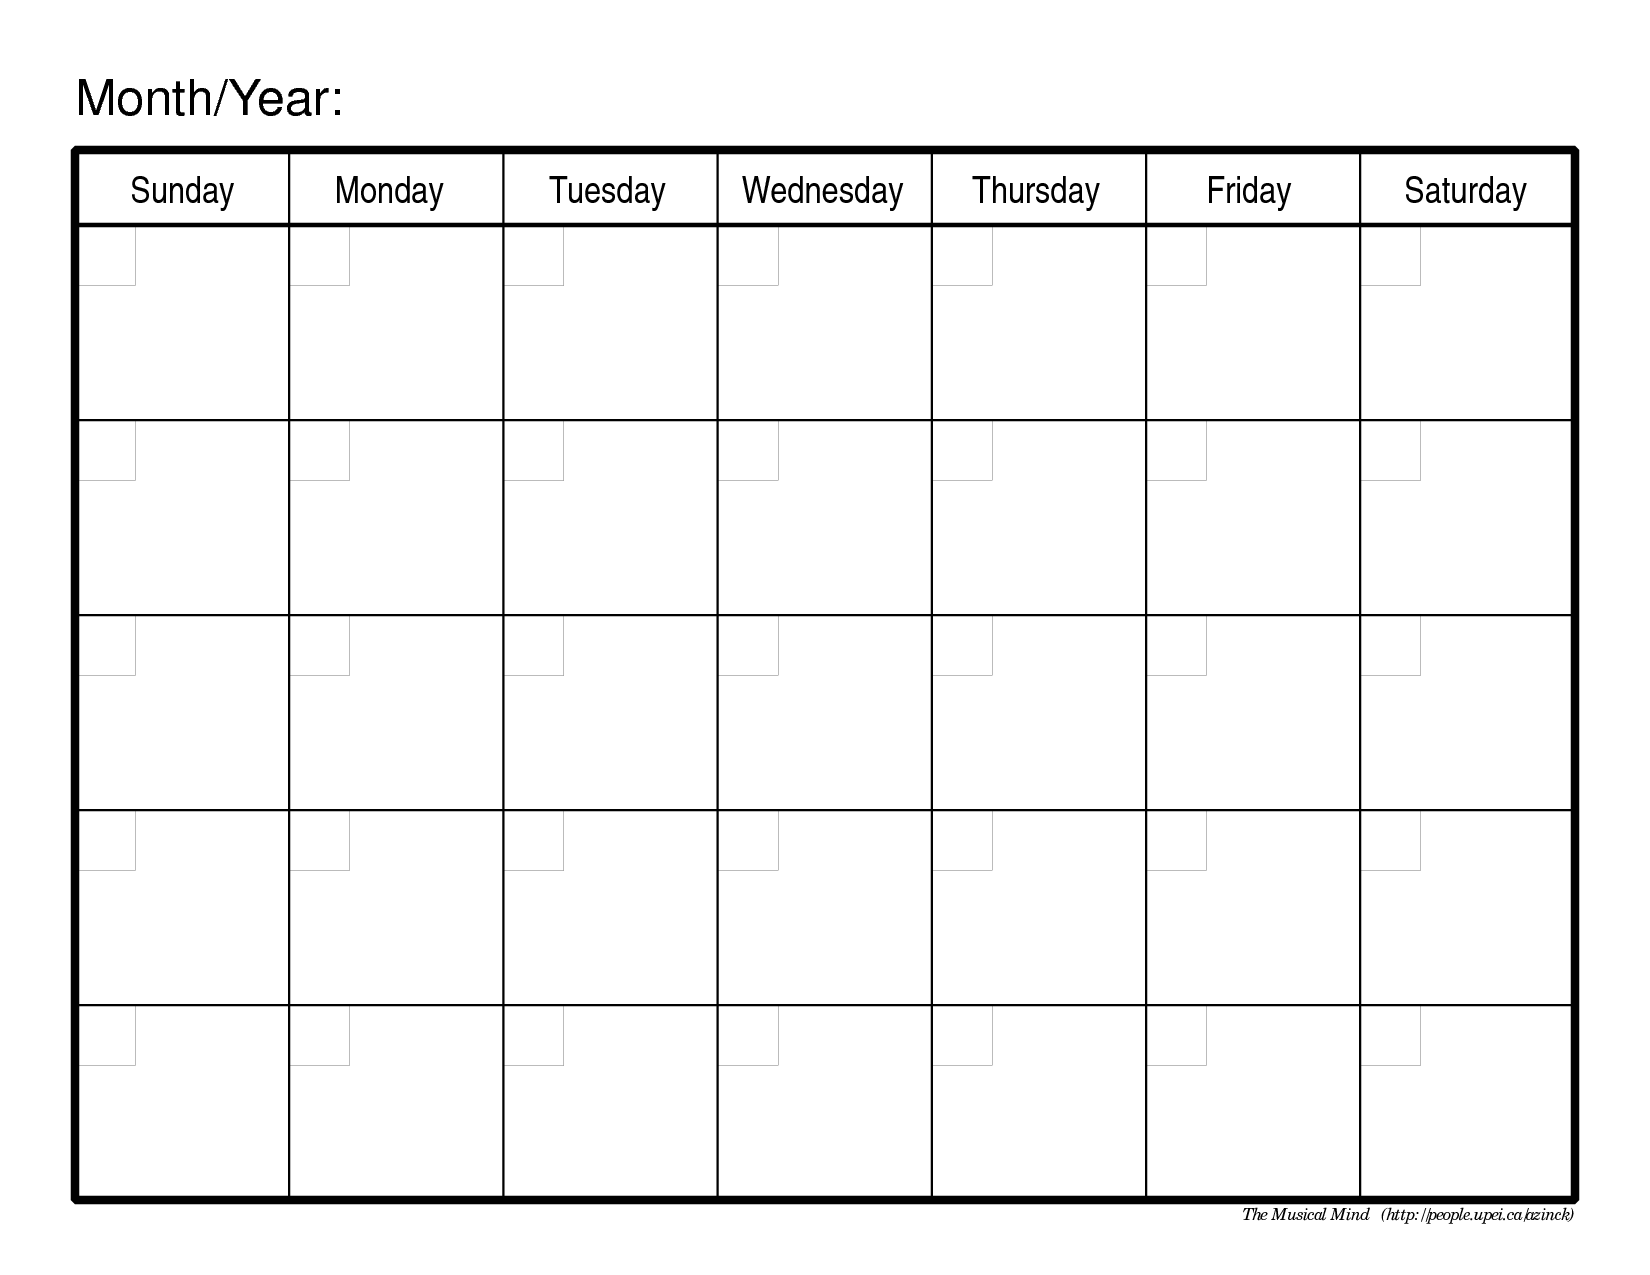 Monthly Calendar Template | Organizing | Pinterest | Monthly